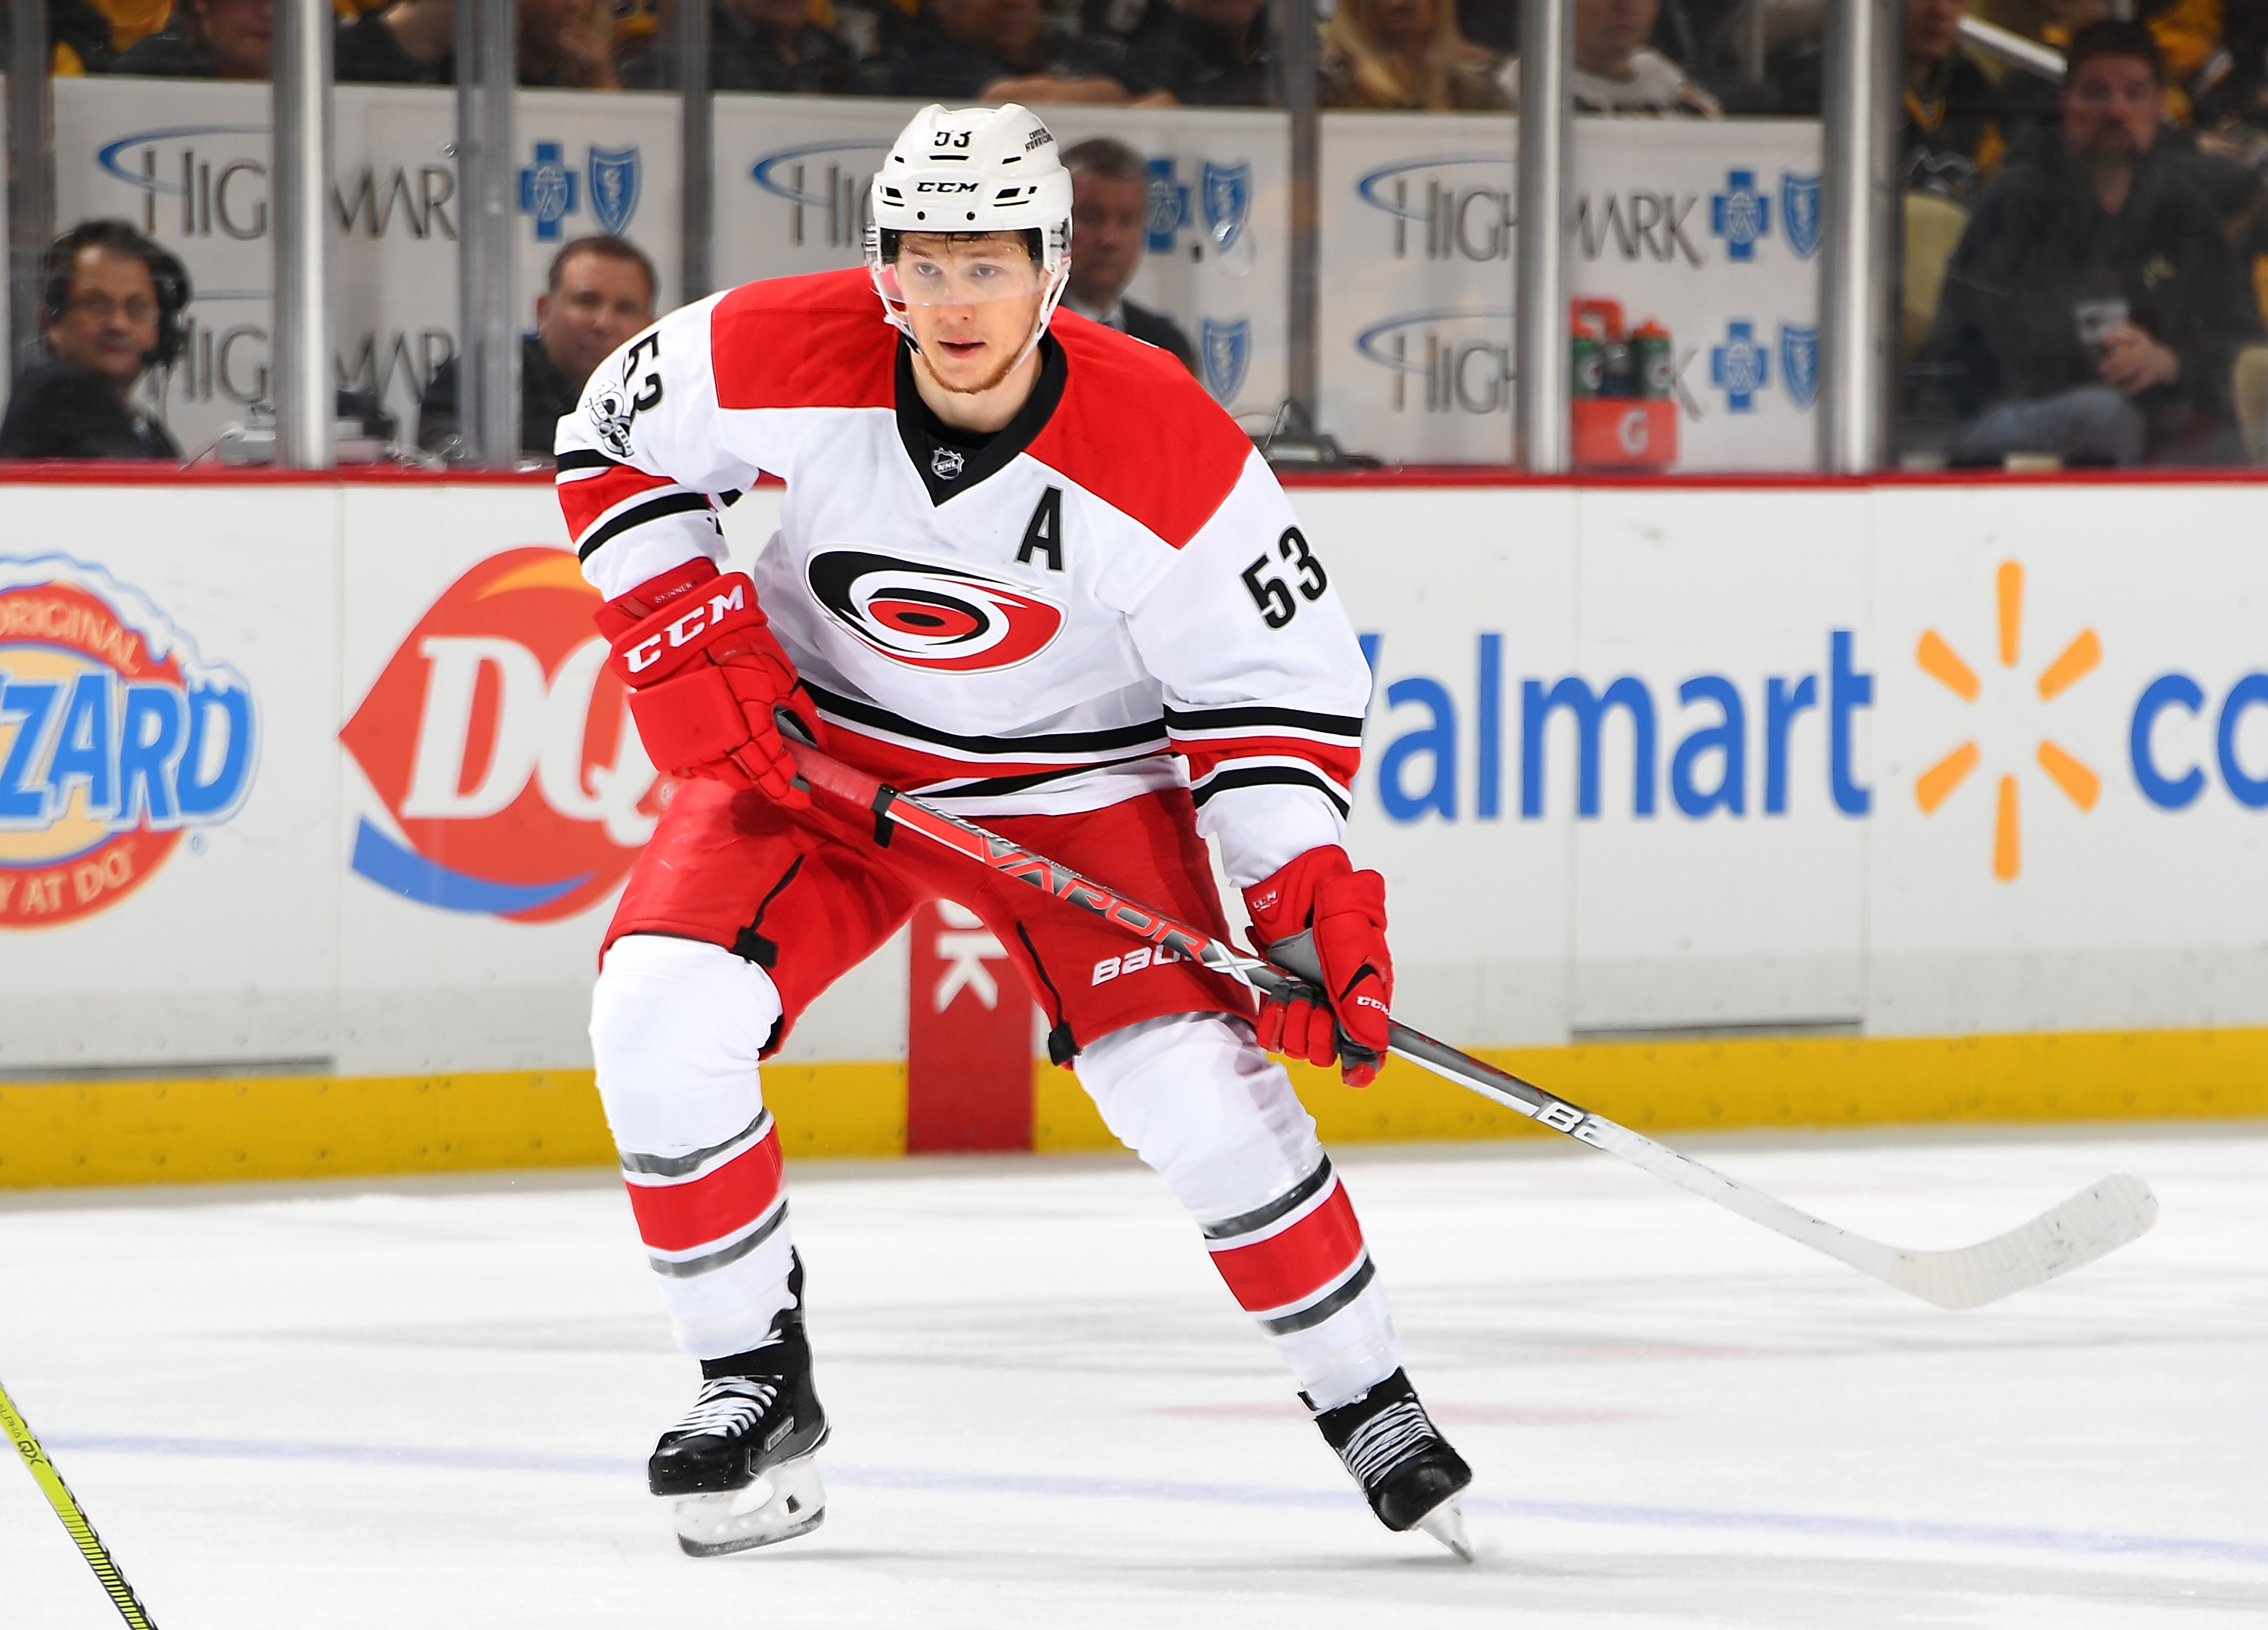 Carolina Hurricanes vs. Minnesota Wild - 10/7/17 NHL Pick, Odds, and Prediction